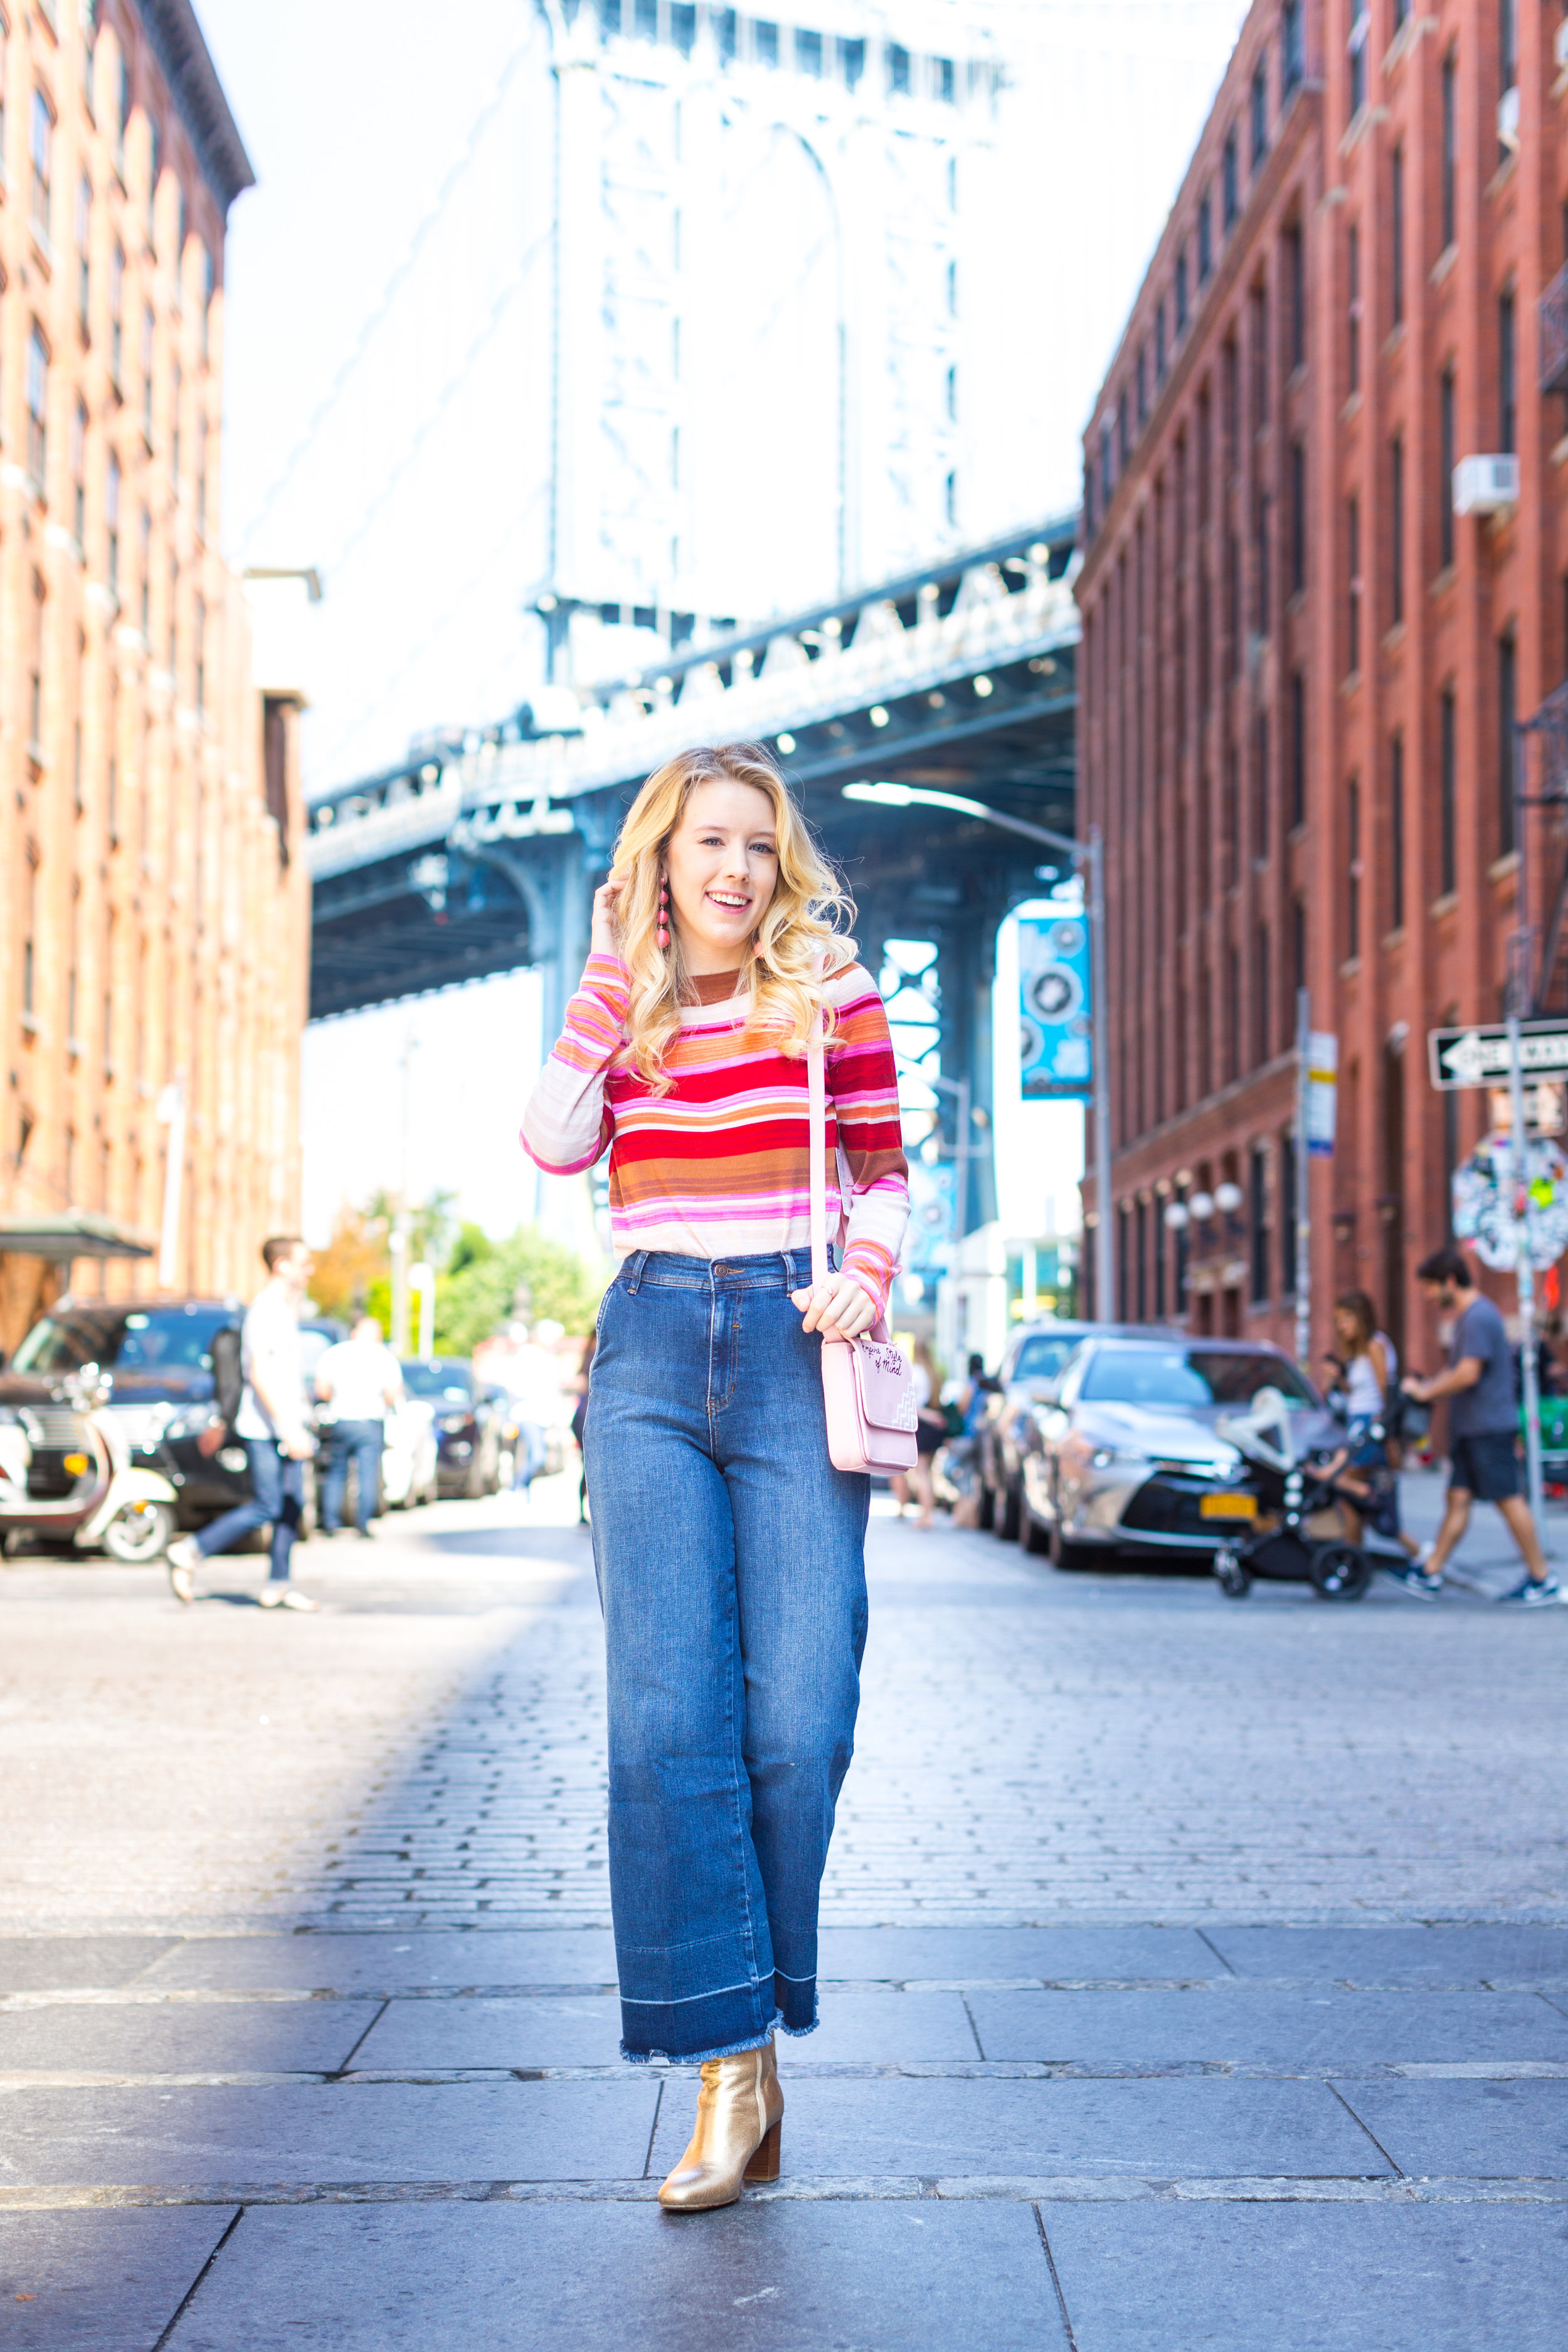 Fall Fashion Retro Striped Sweater and Wide Leg Jeans-11.jpg